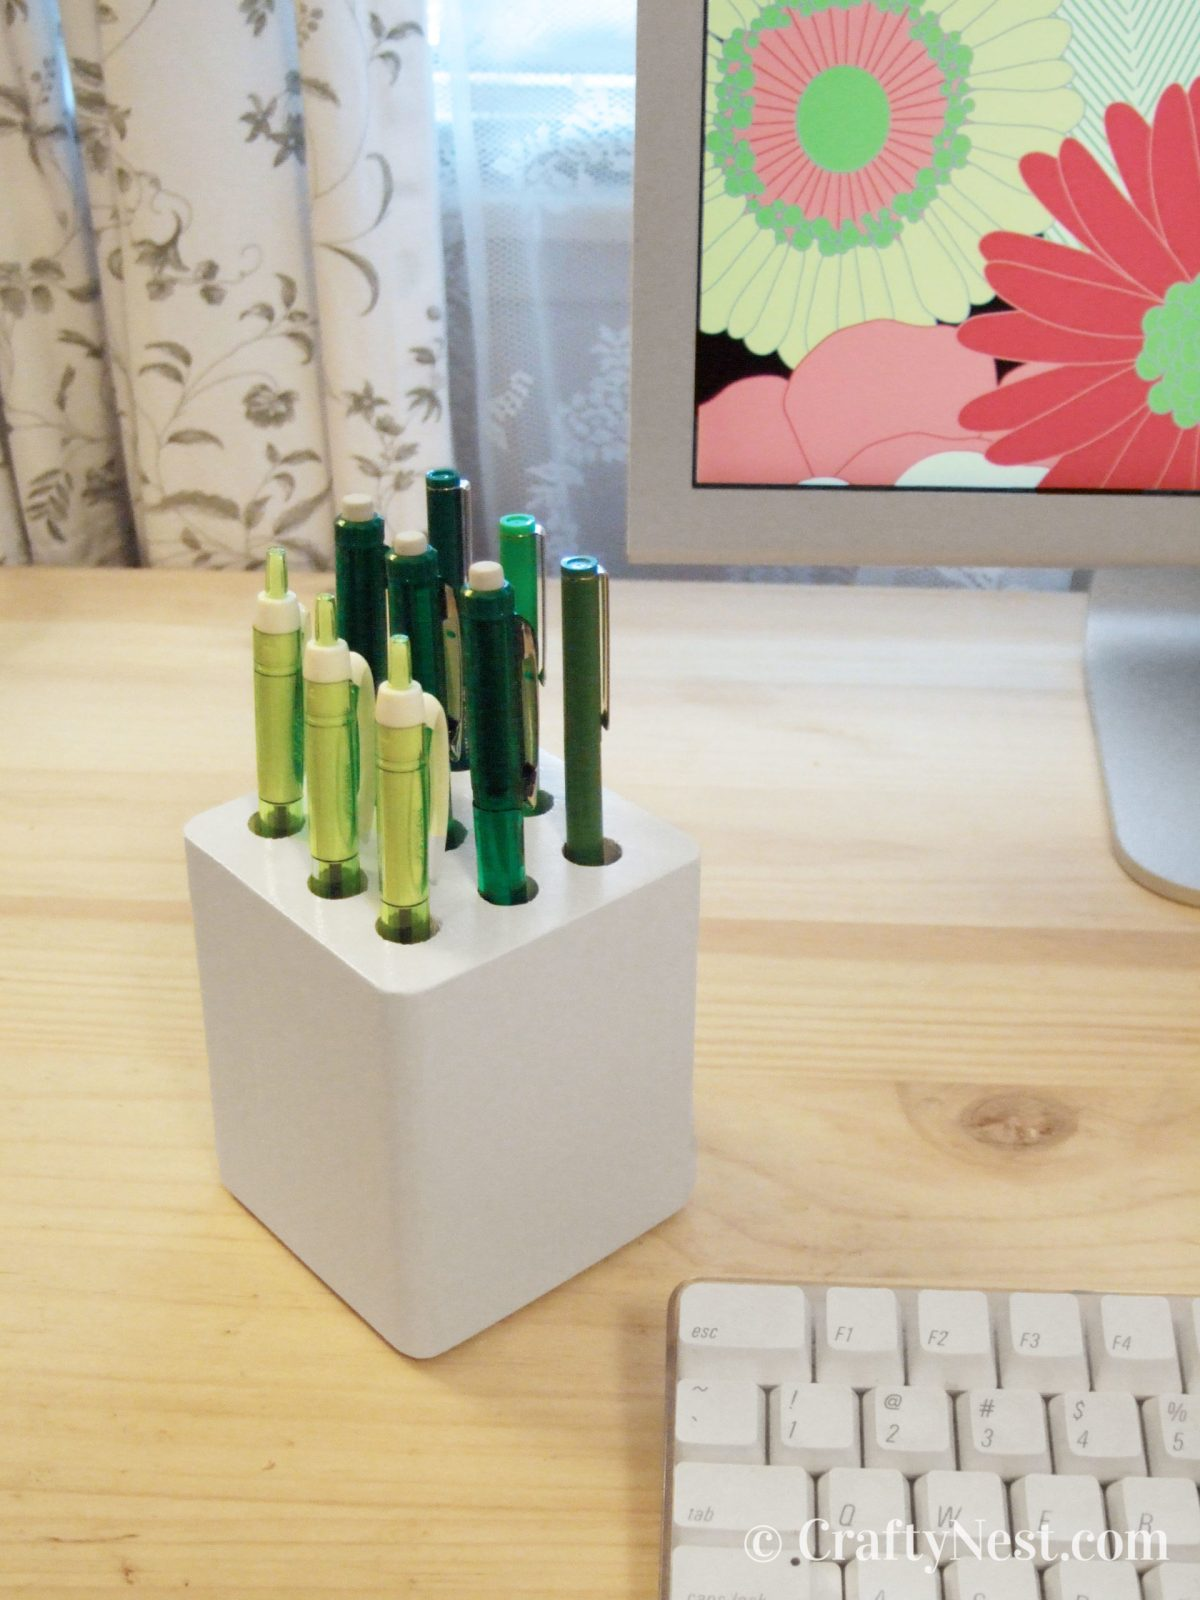 Pencil caddy made from salvaged wood, photo